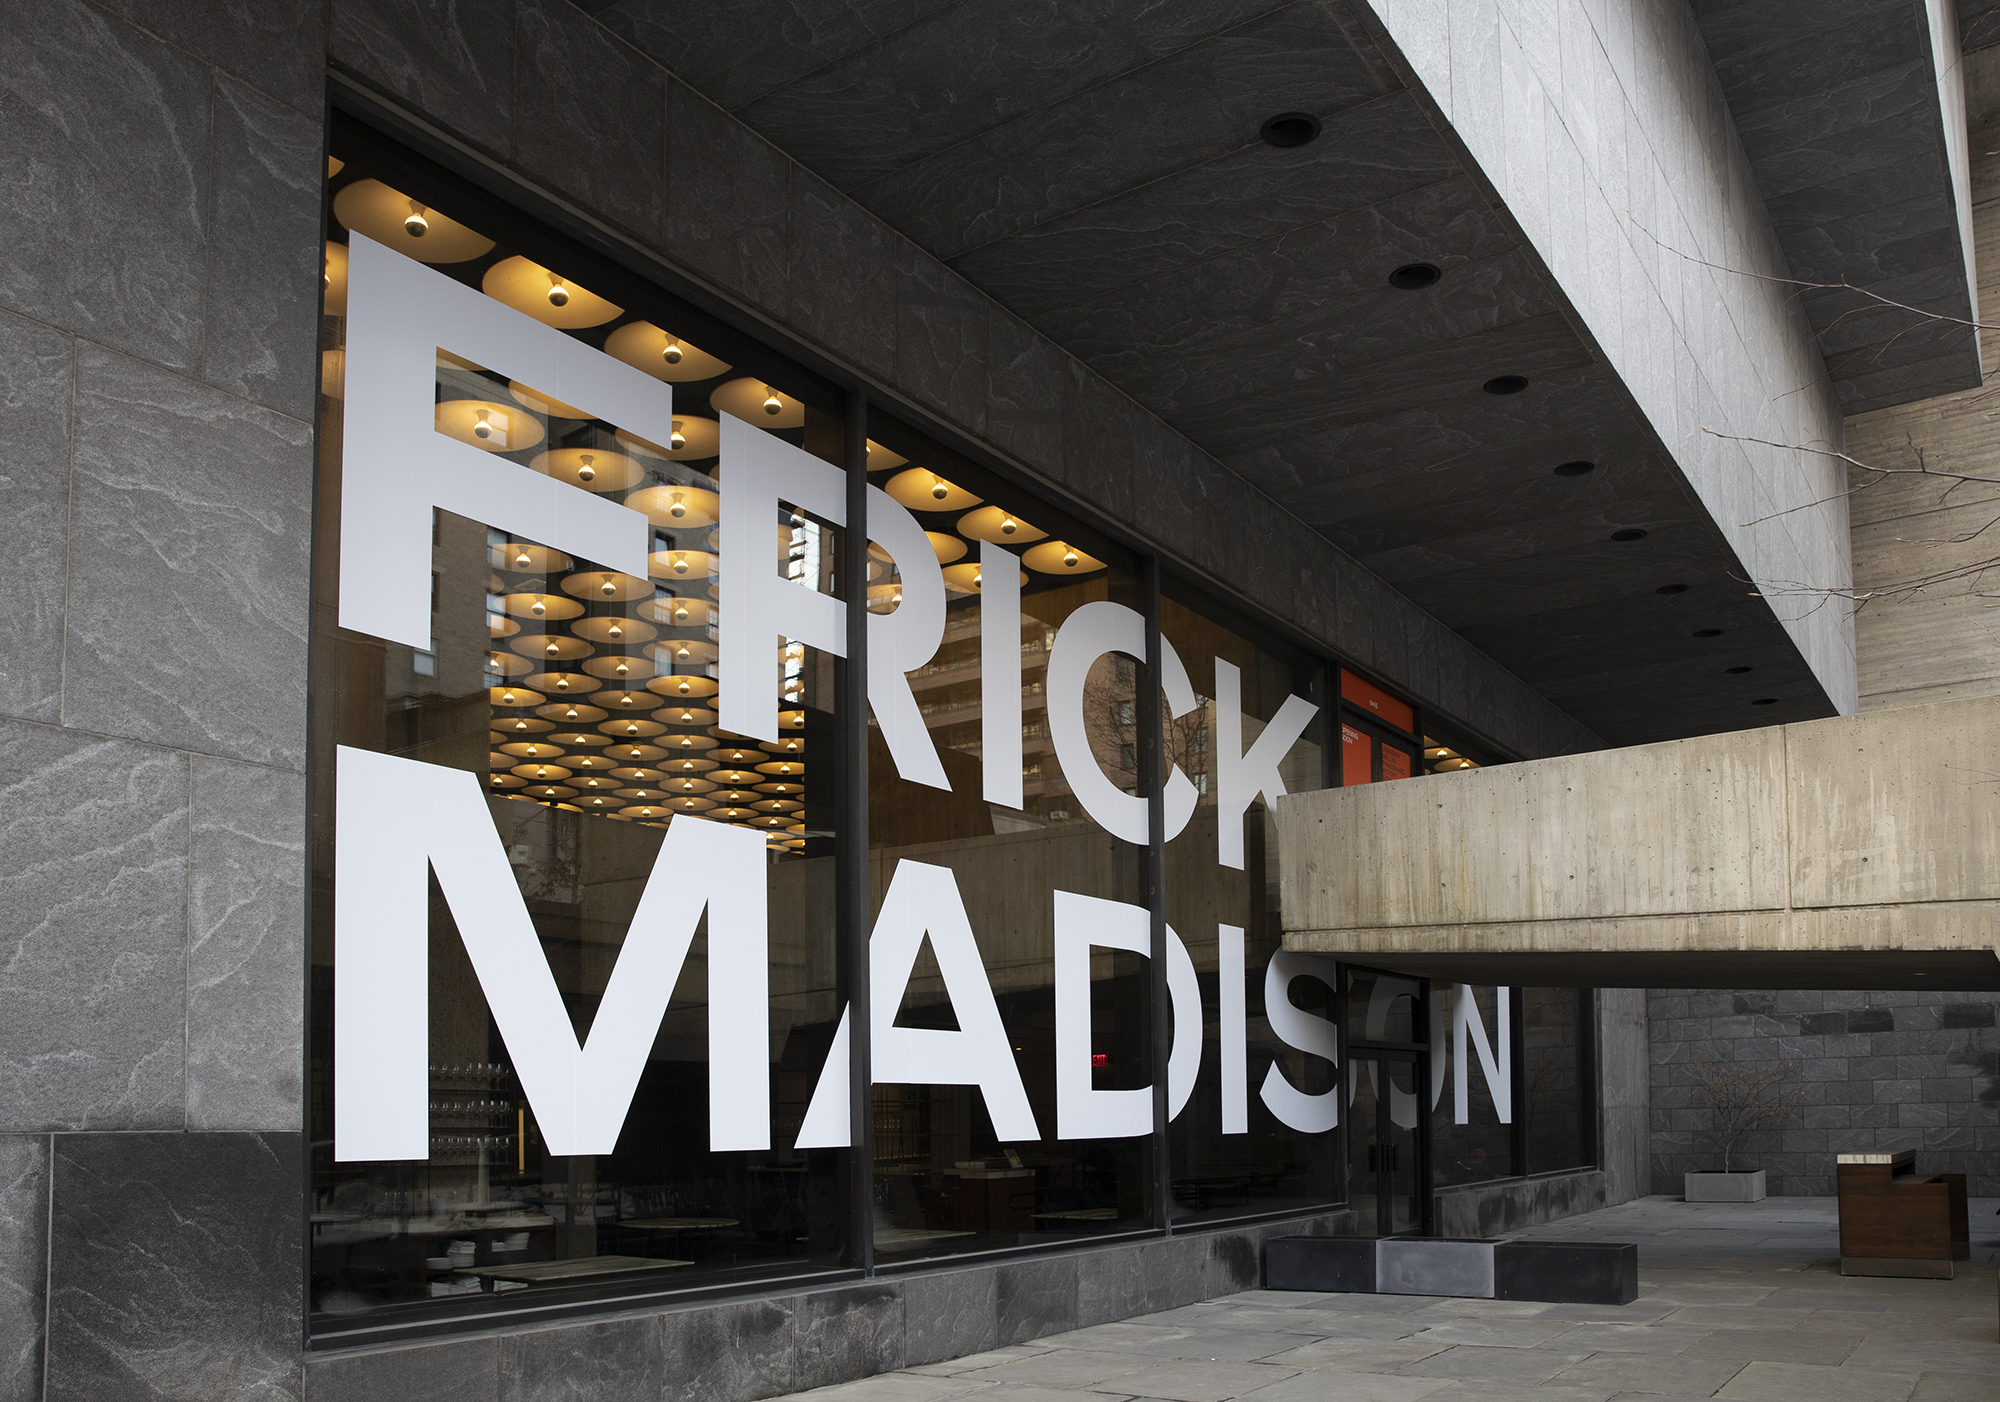 Your guide to the new Frick Madison